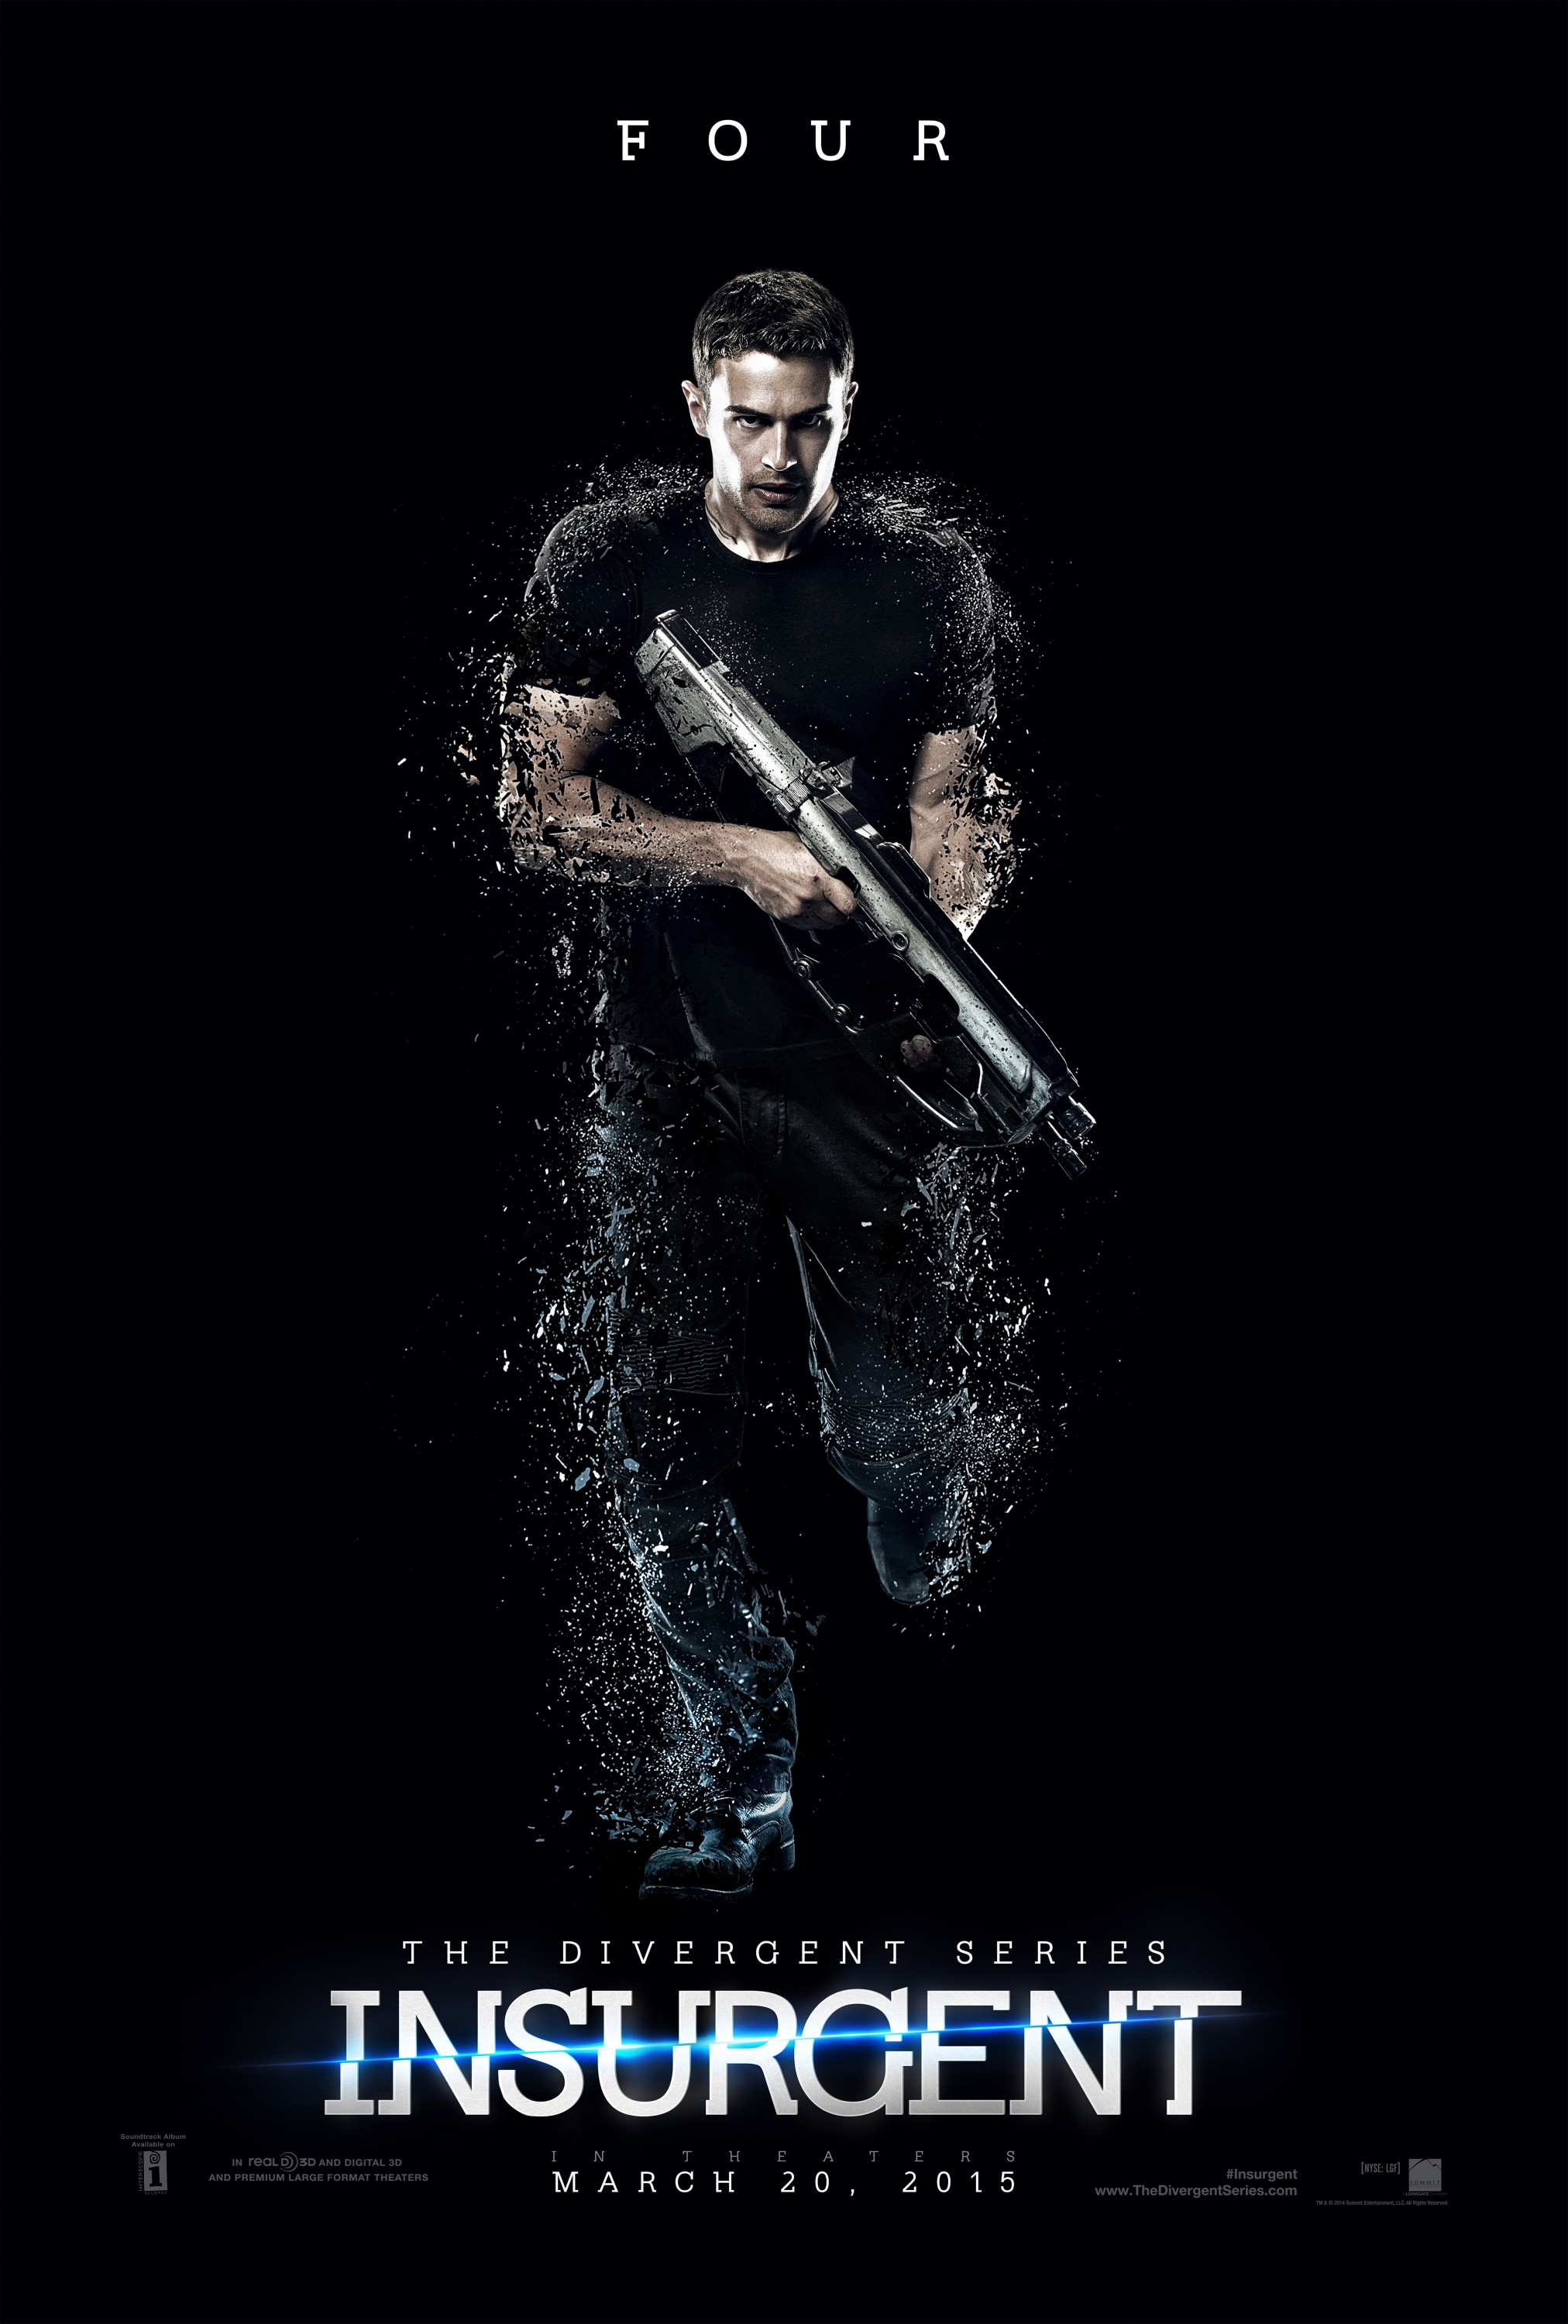 Insurgent-Official Poster XXLG-30OUTUBRO2014-06